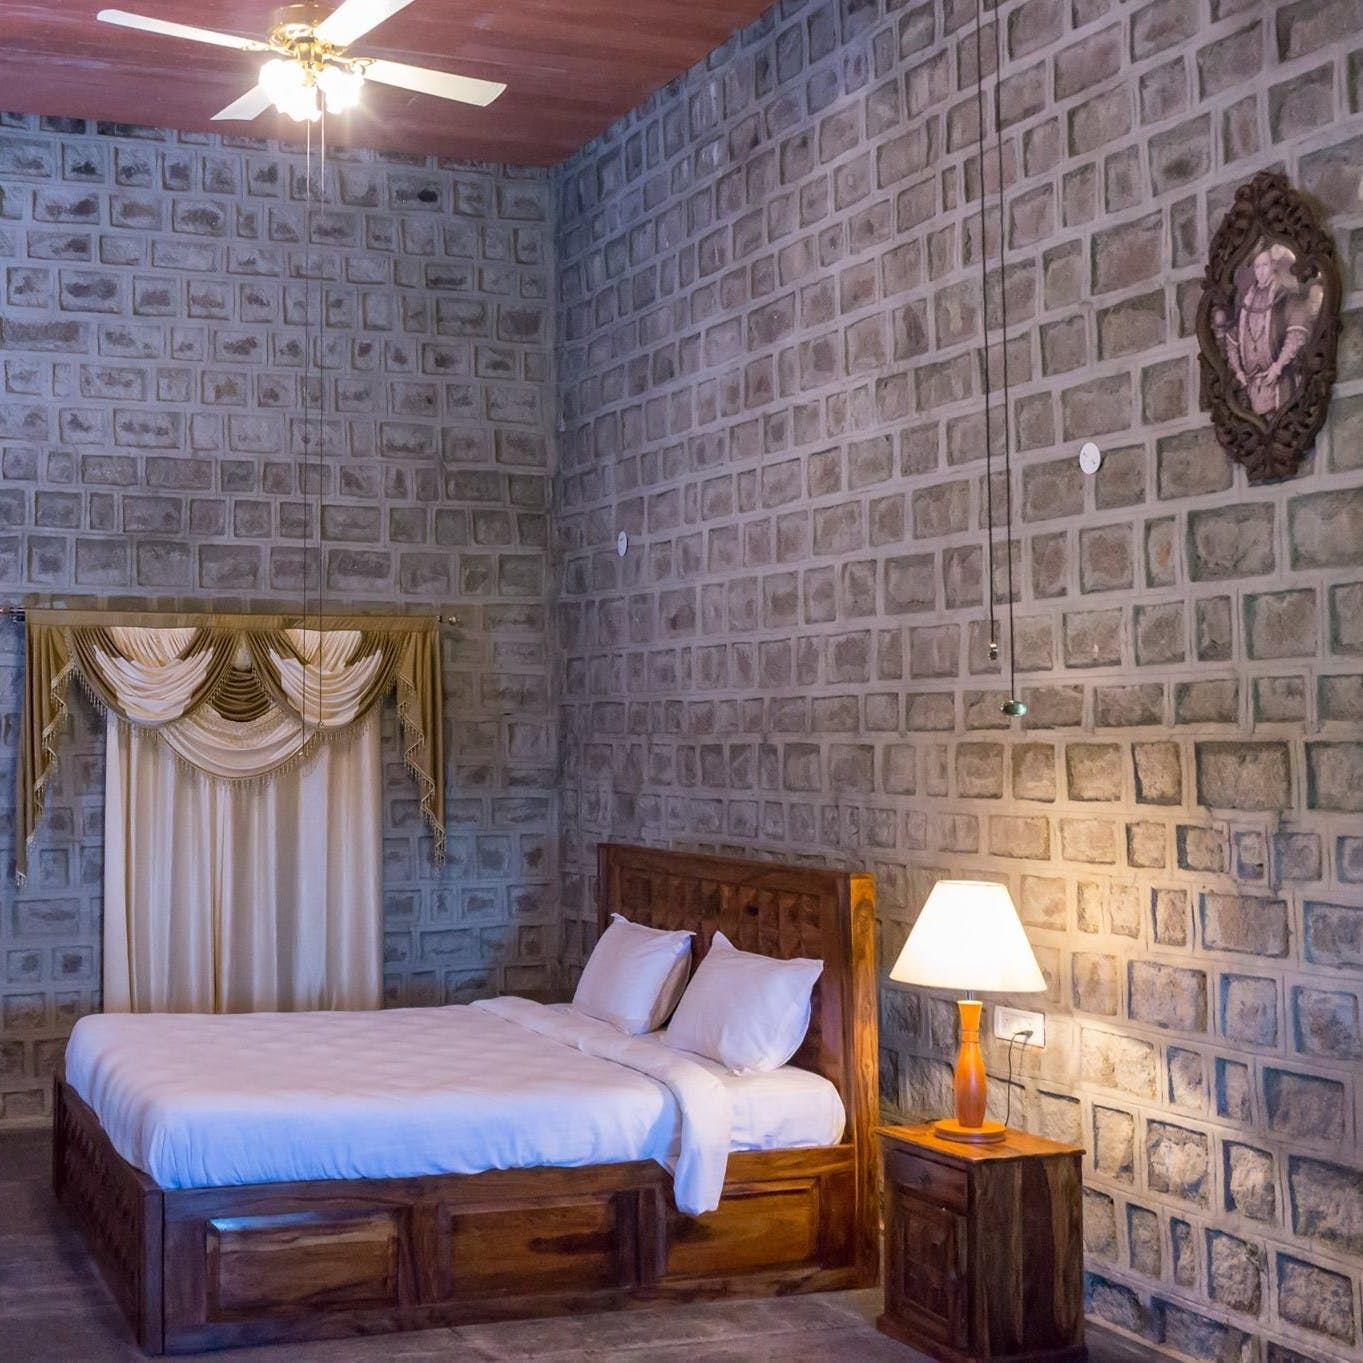 Go Camping Or Live Like Royalty At This Castle-Themed Resort Which Is Budget Too